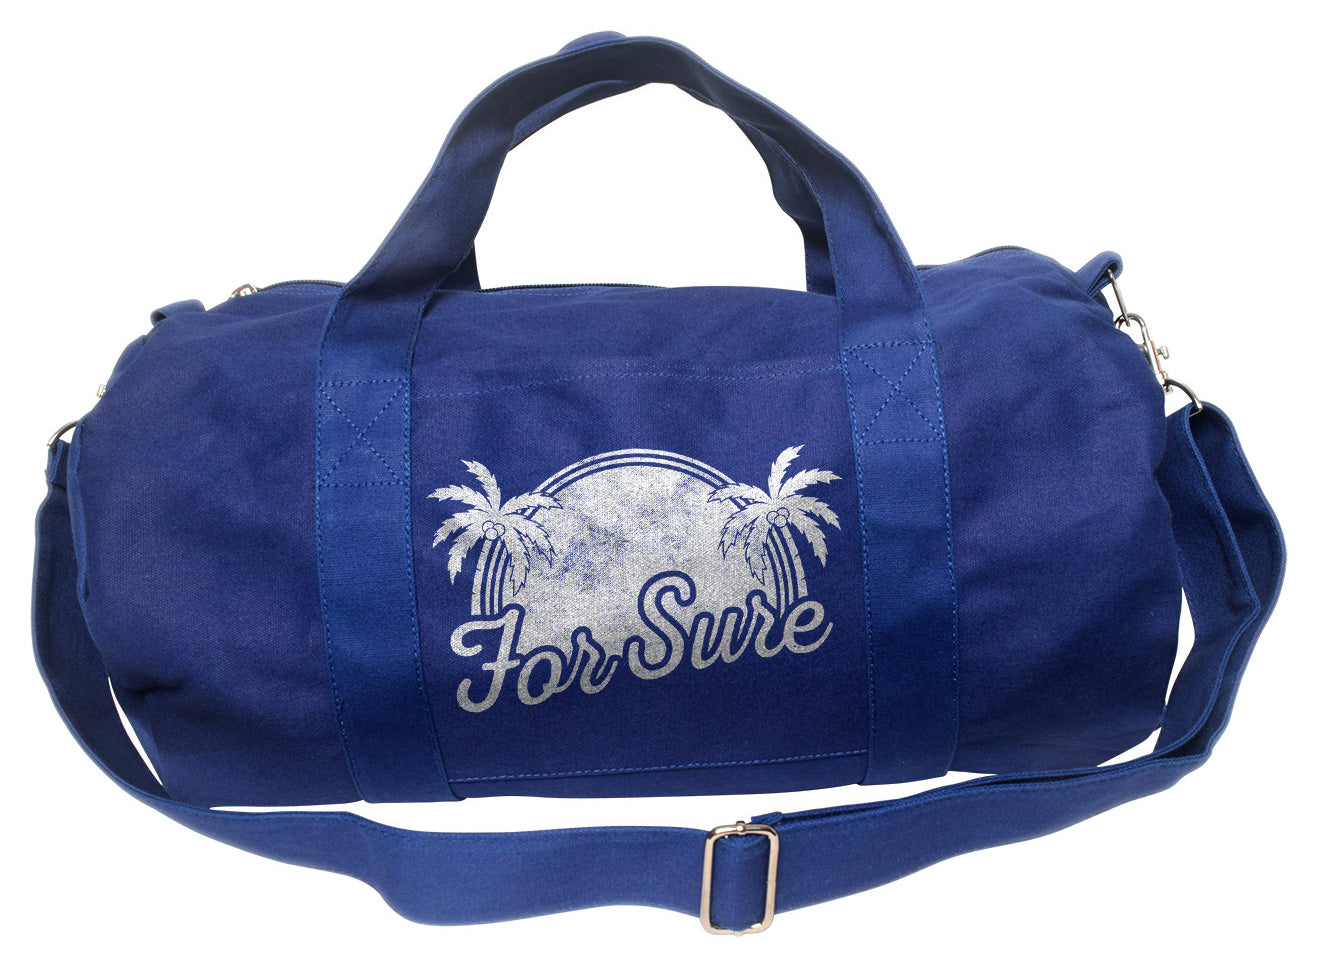 For Sure Duffel Bag